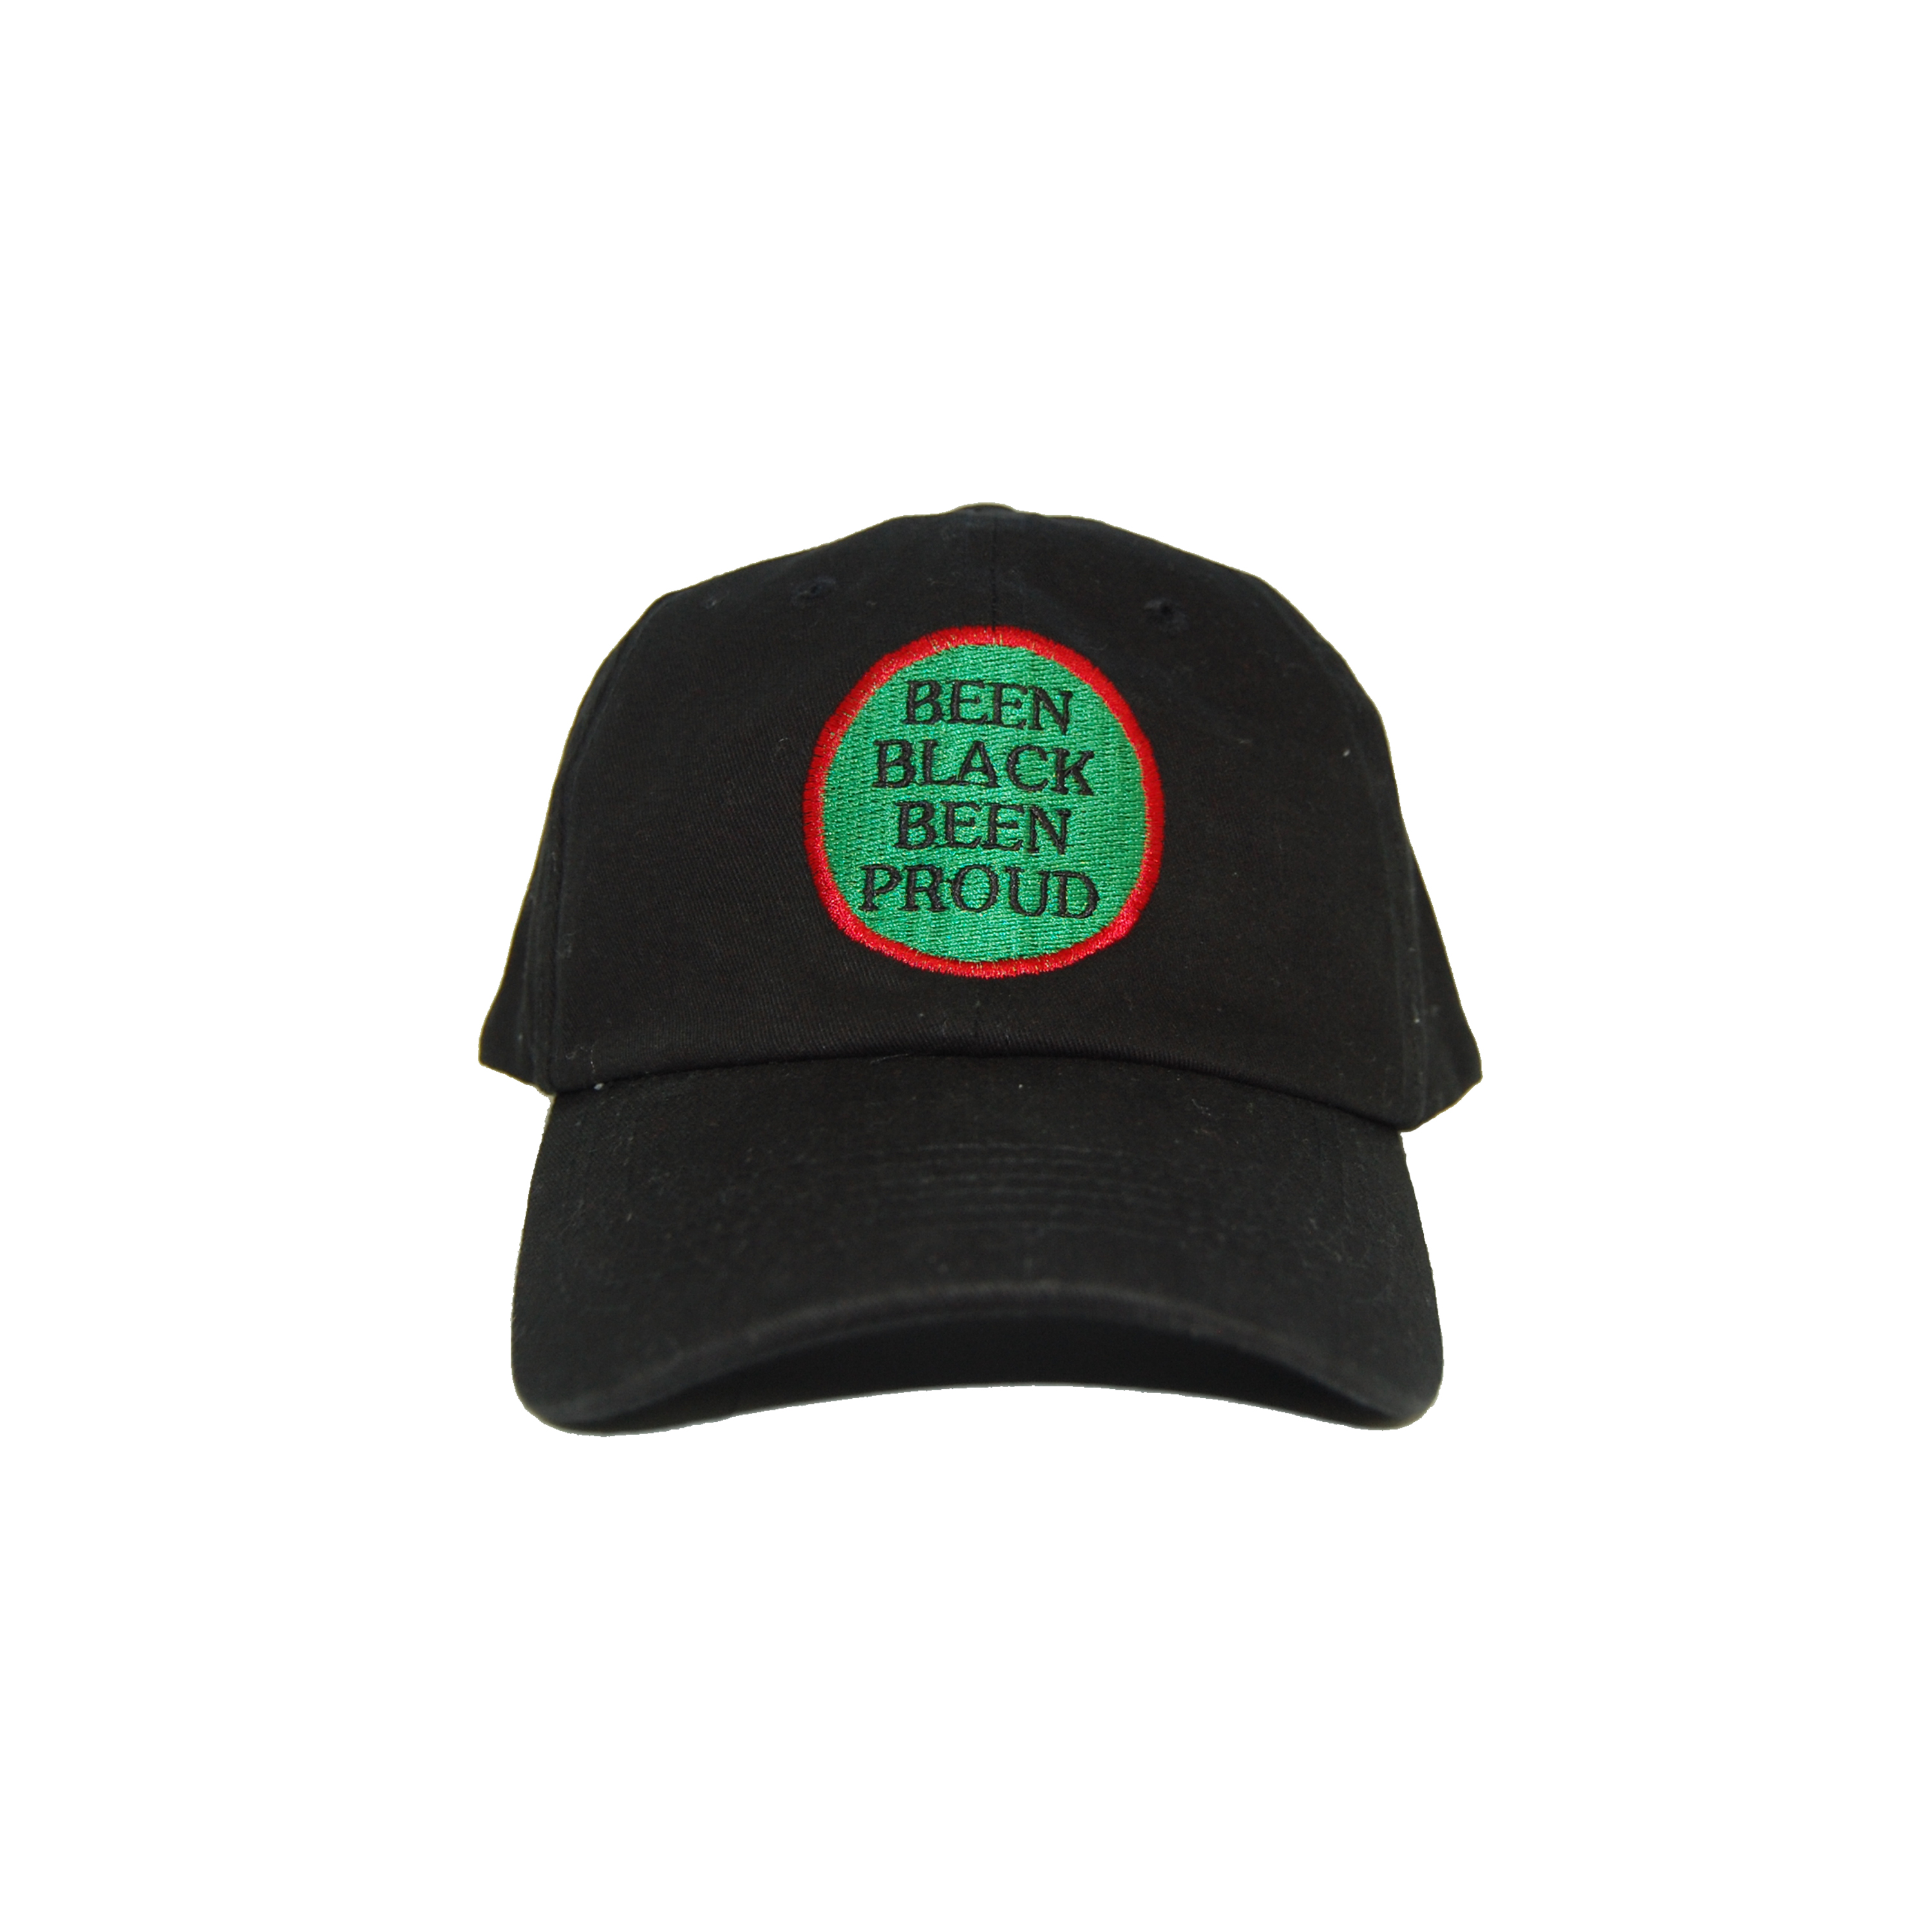 Been Black Been Proud Dad Hat · She s Oh So Thrifty · Online Store ... 065ada32578